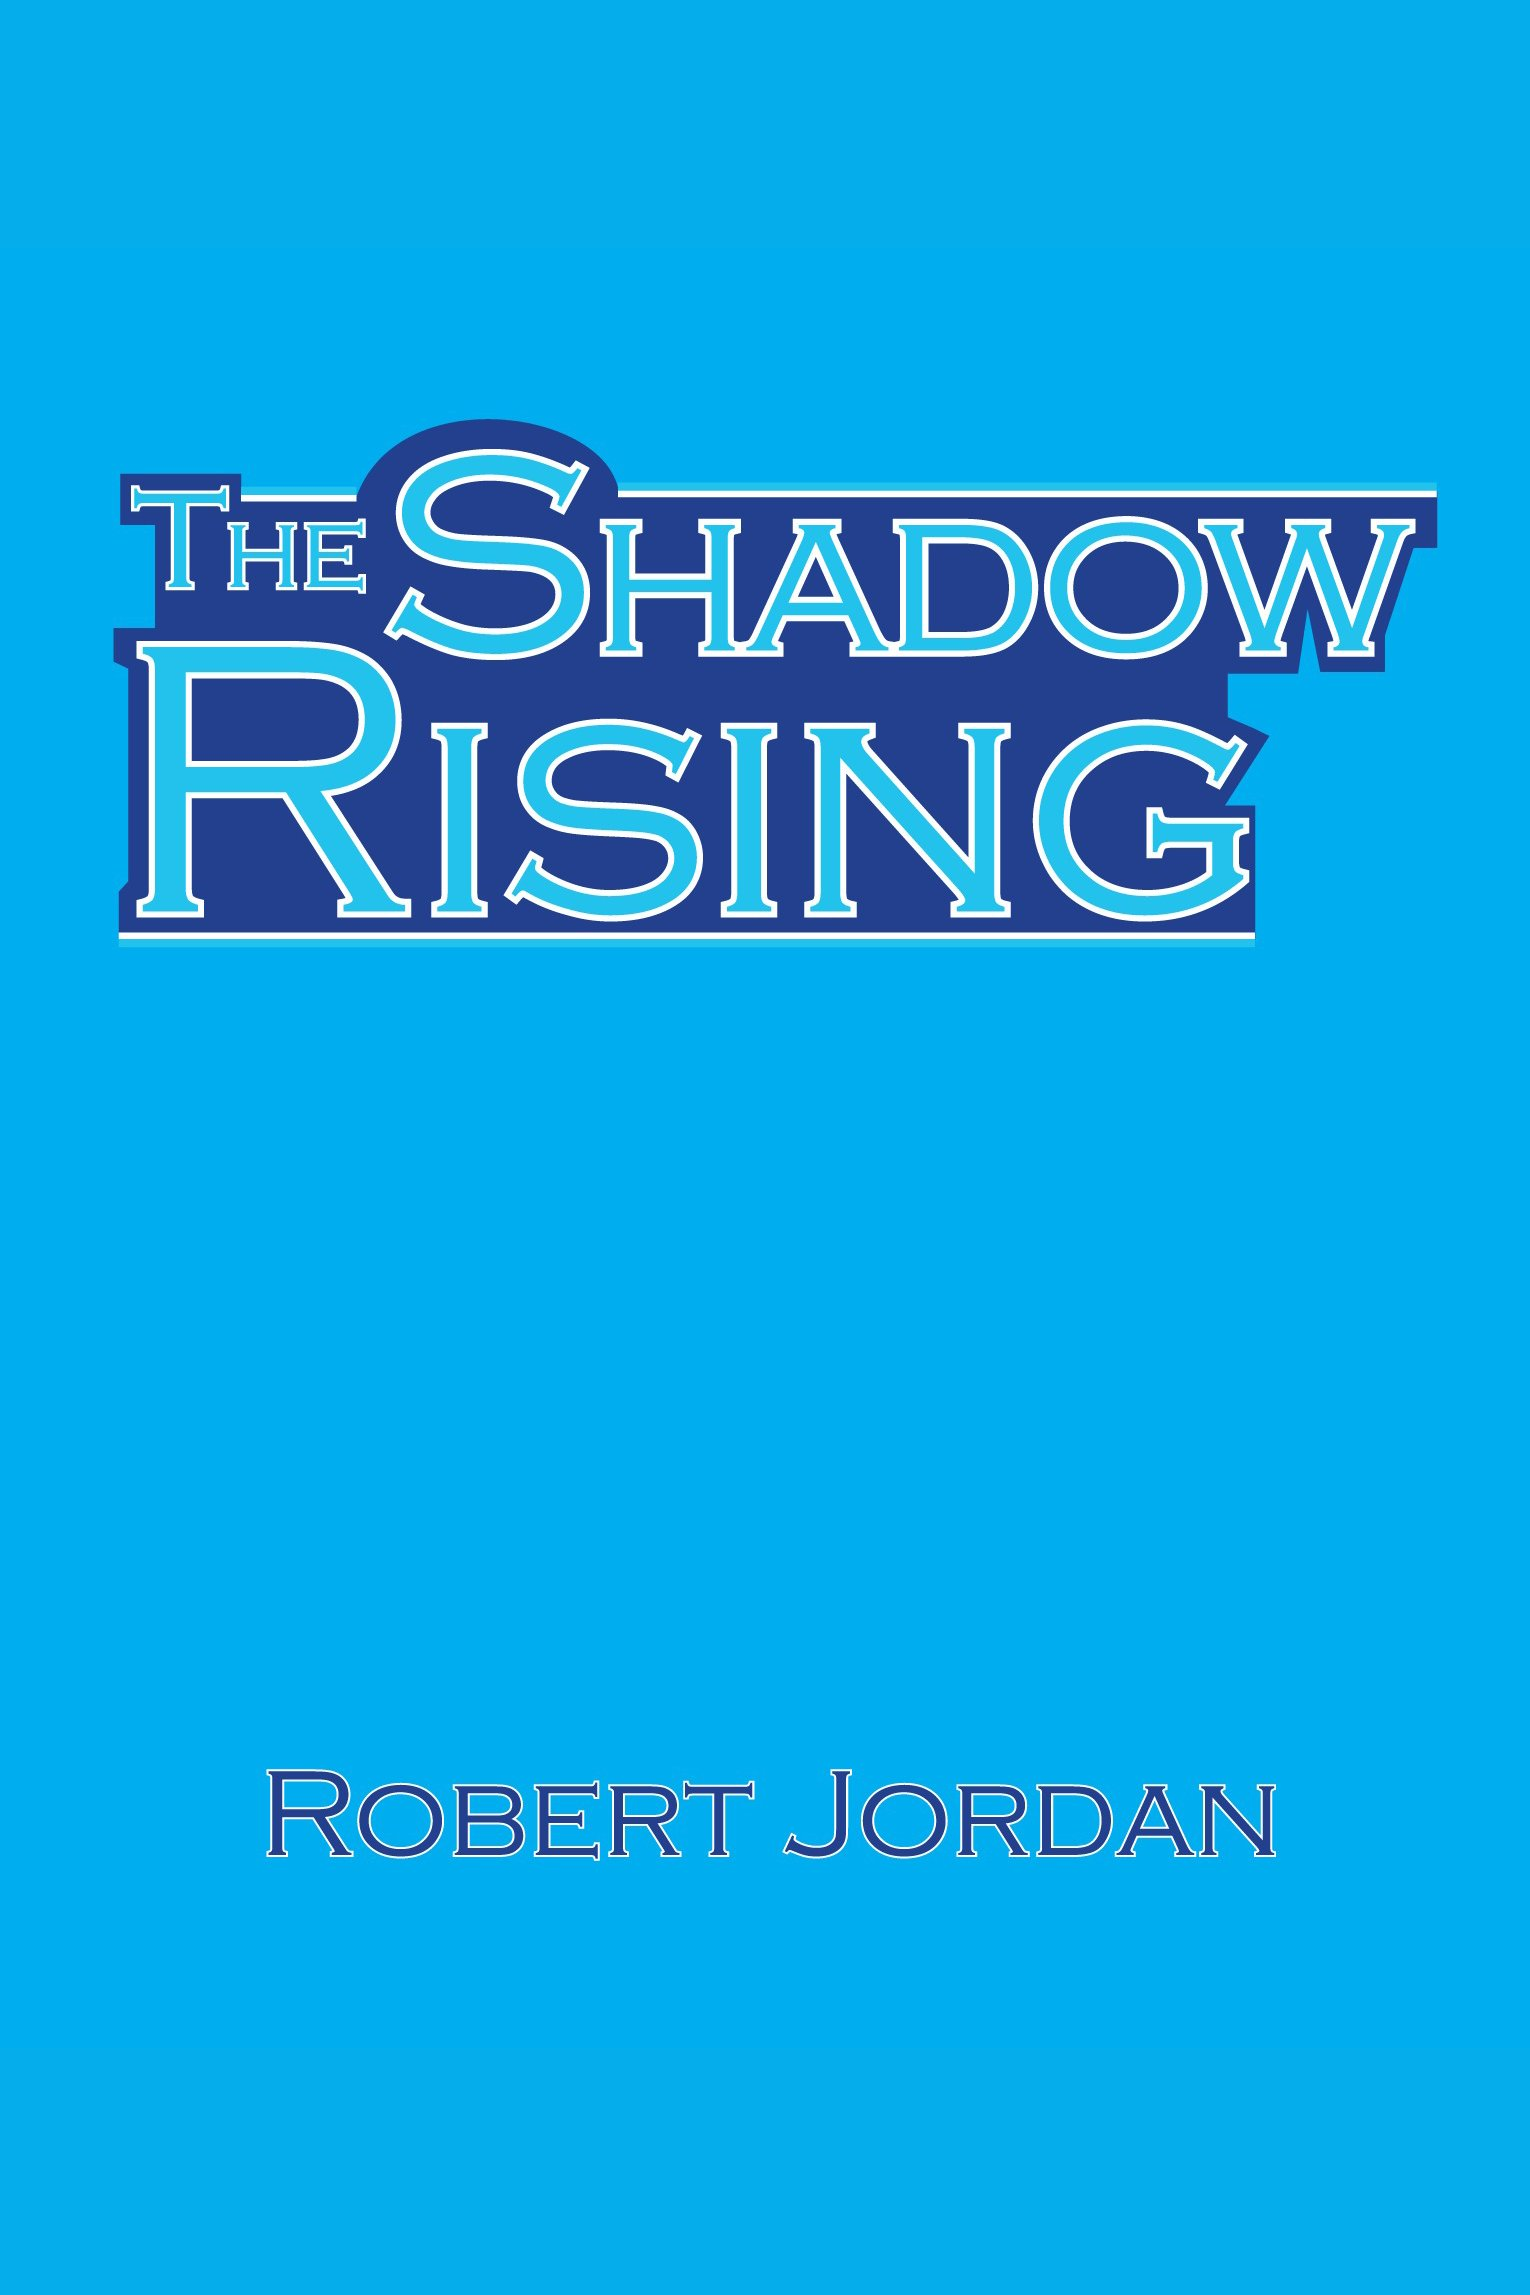 The shadow rising cover image